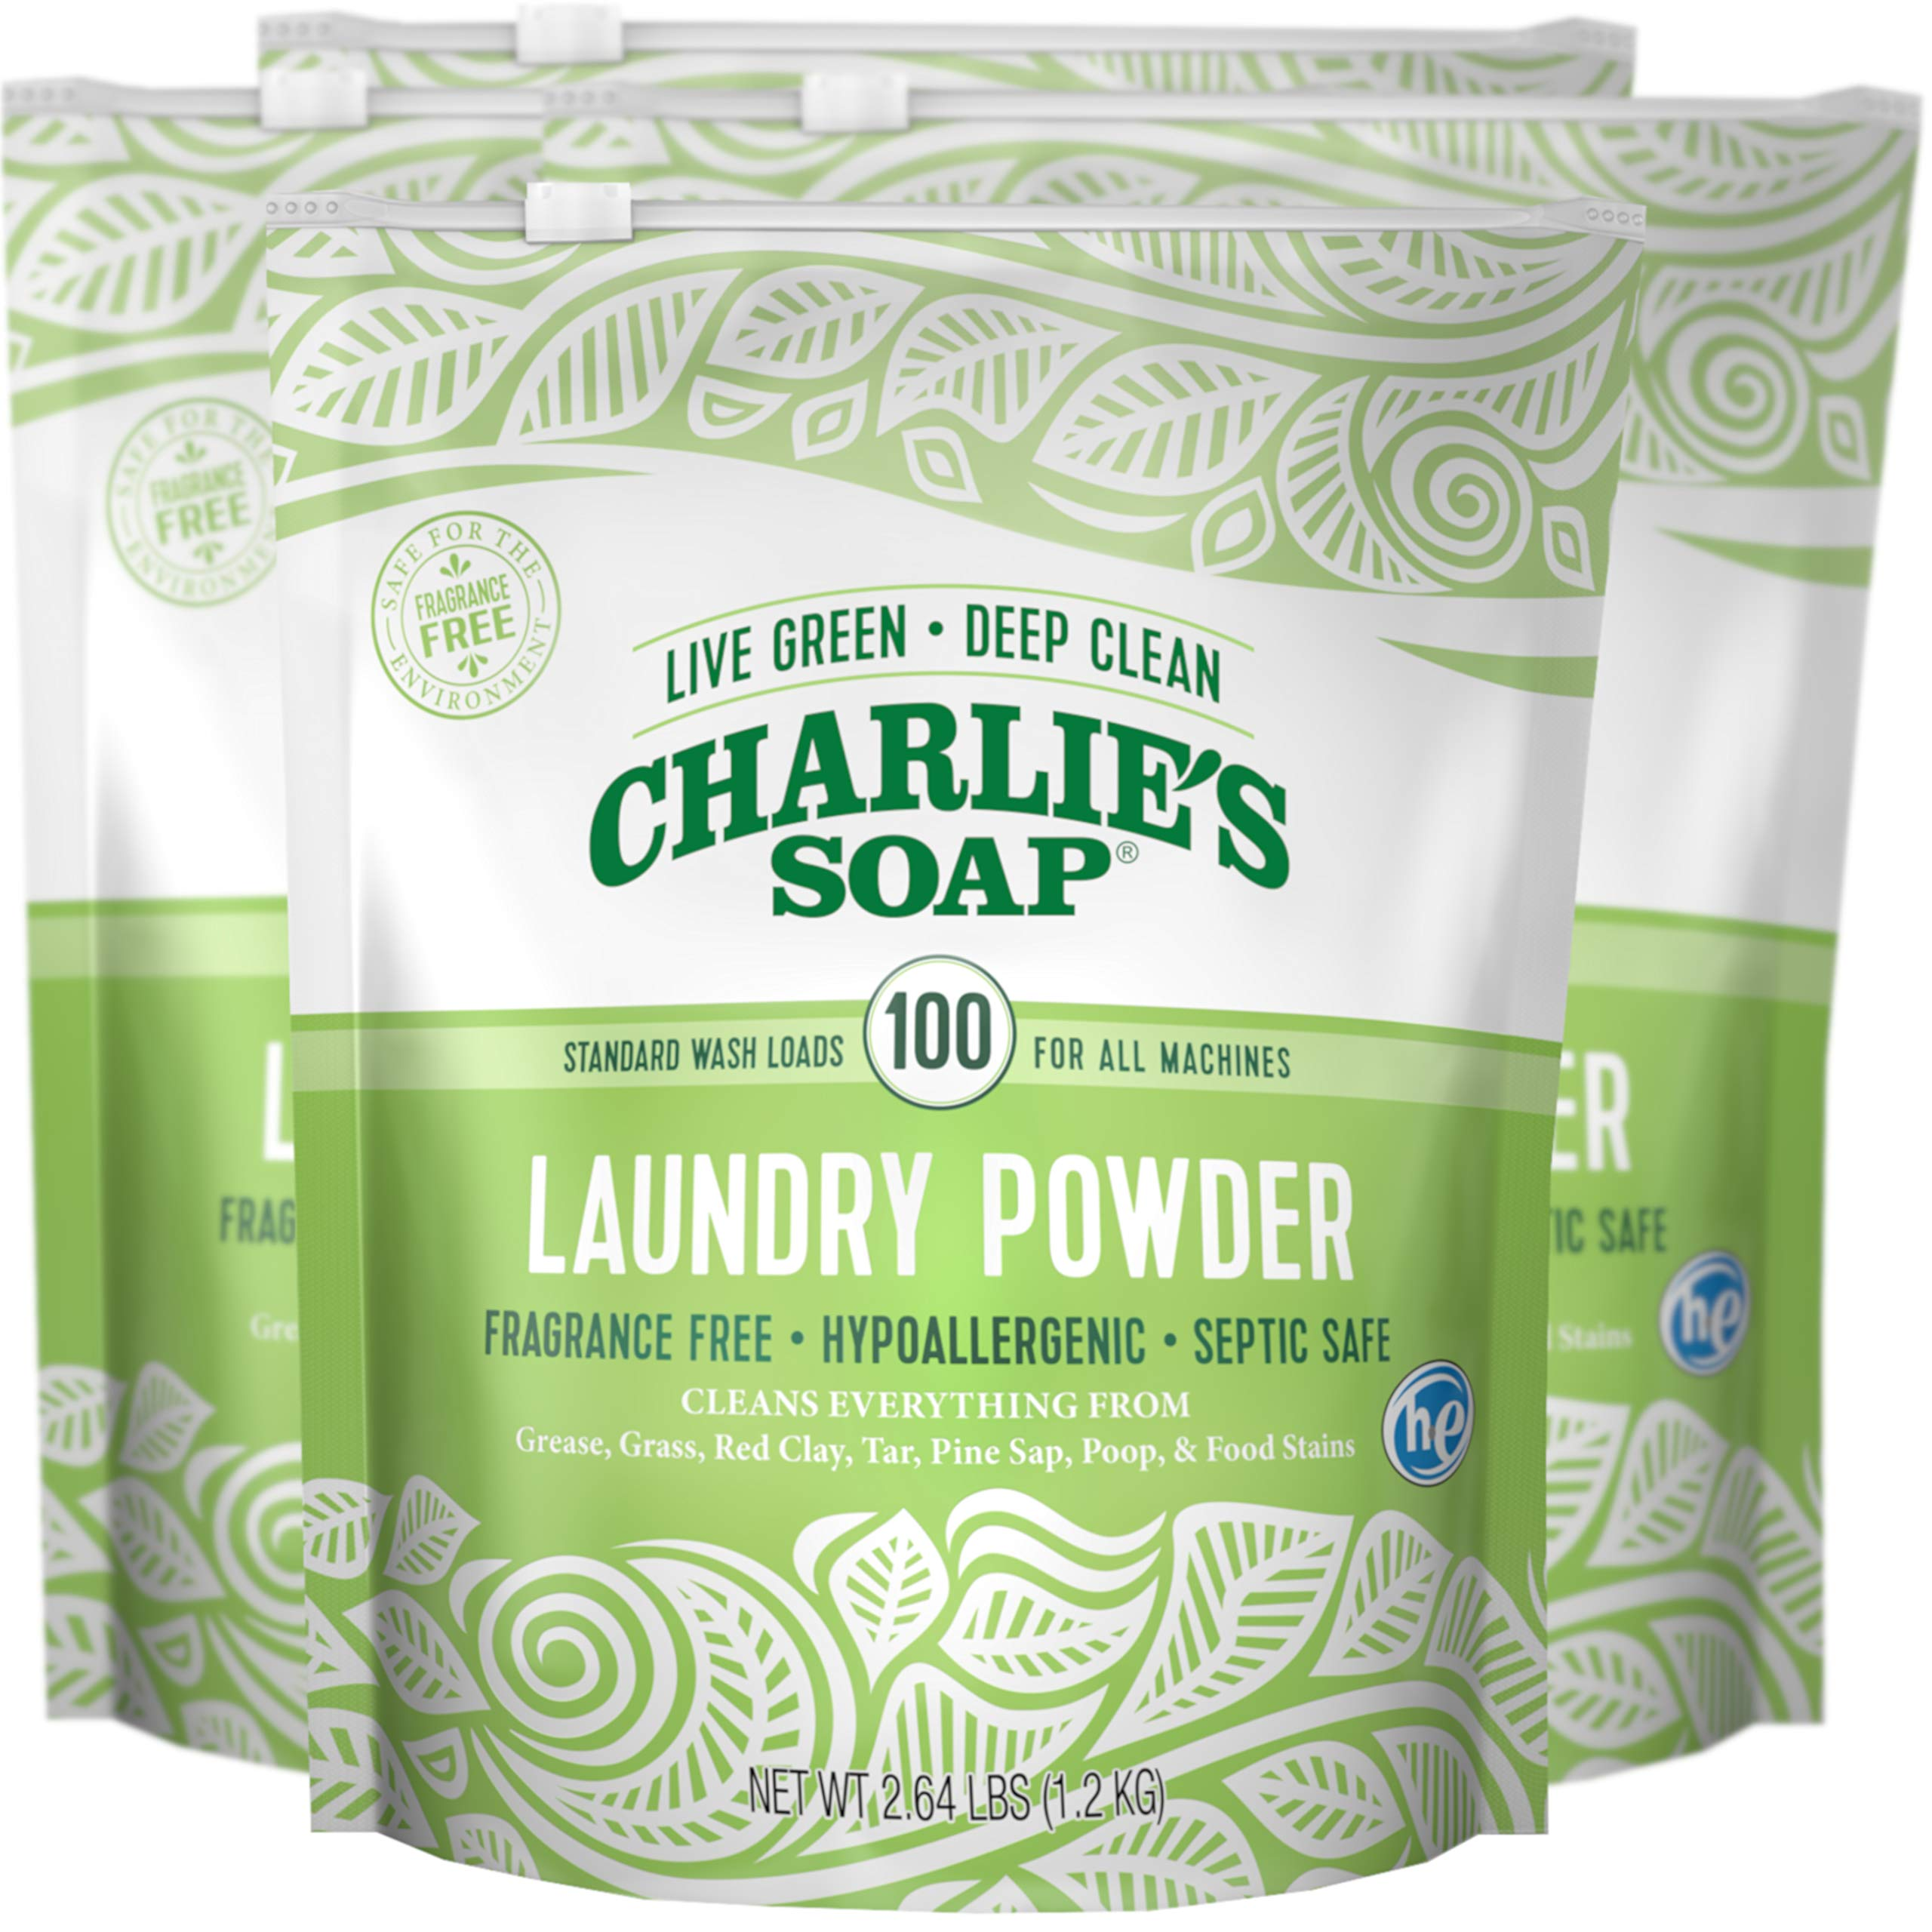 Charlie's Soap Laundry Powder (100 Loads, 4 Pack) Hypoallergenic Deep Cleaning Washing Powder Detergent - Eco-Friendly, Safe, and Effective by Charlie's Soap